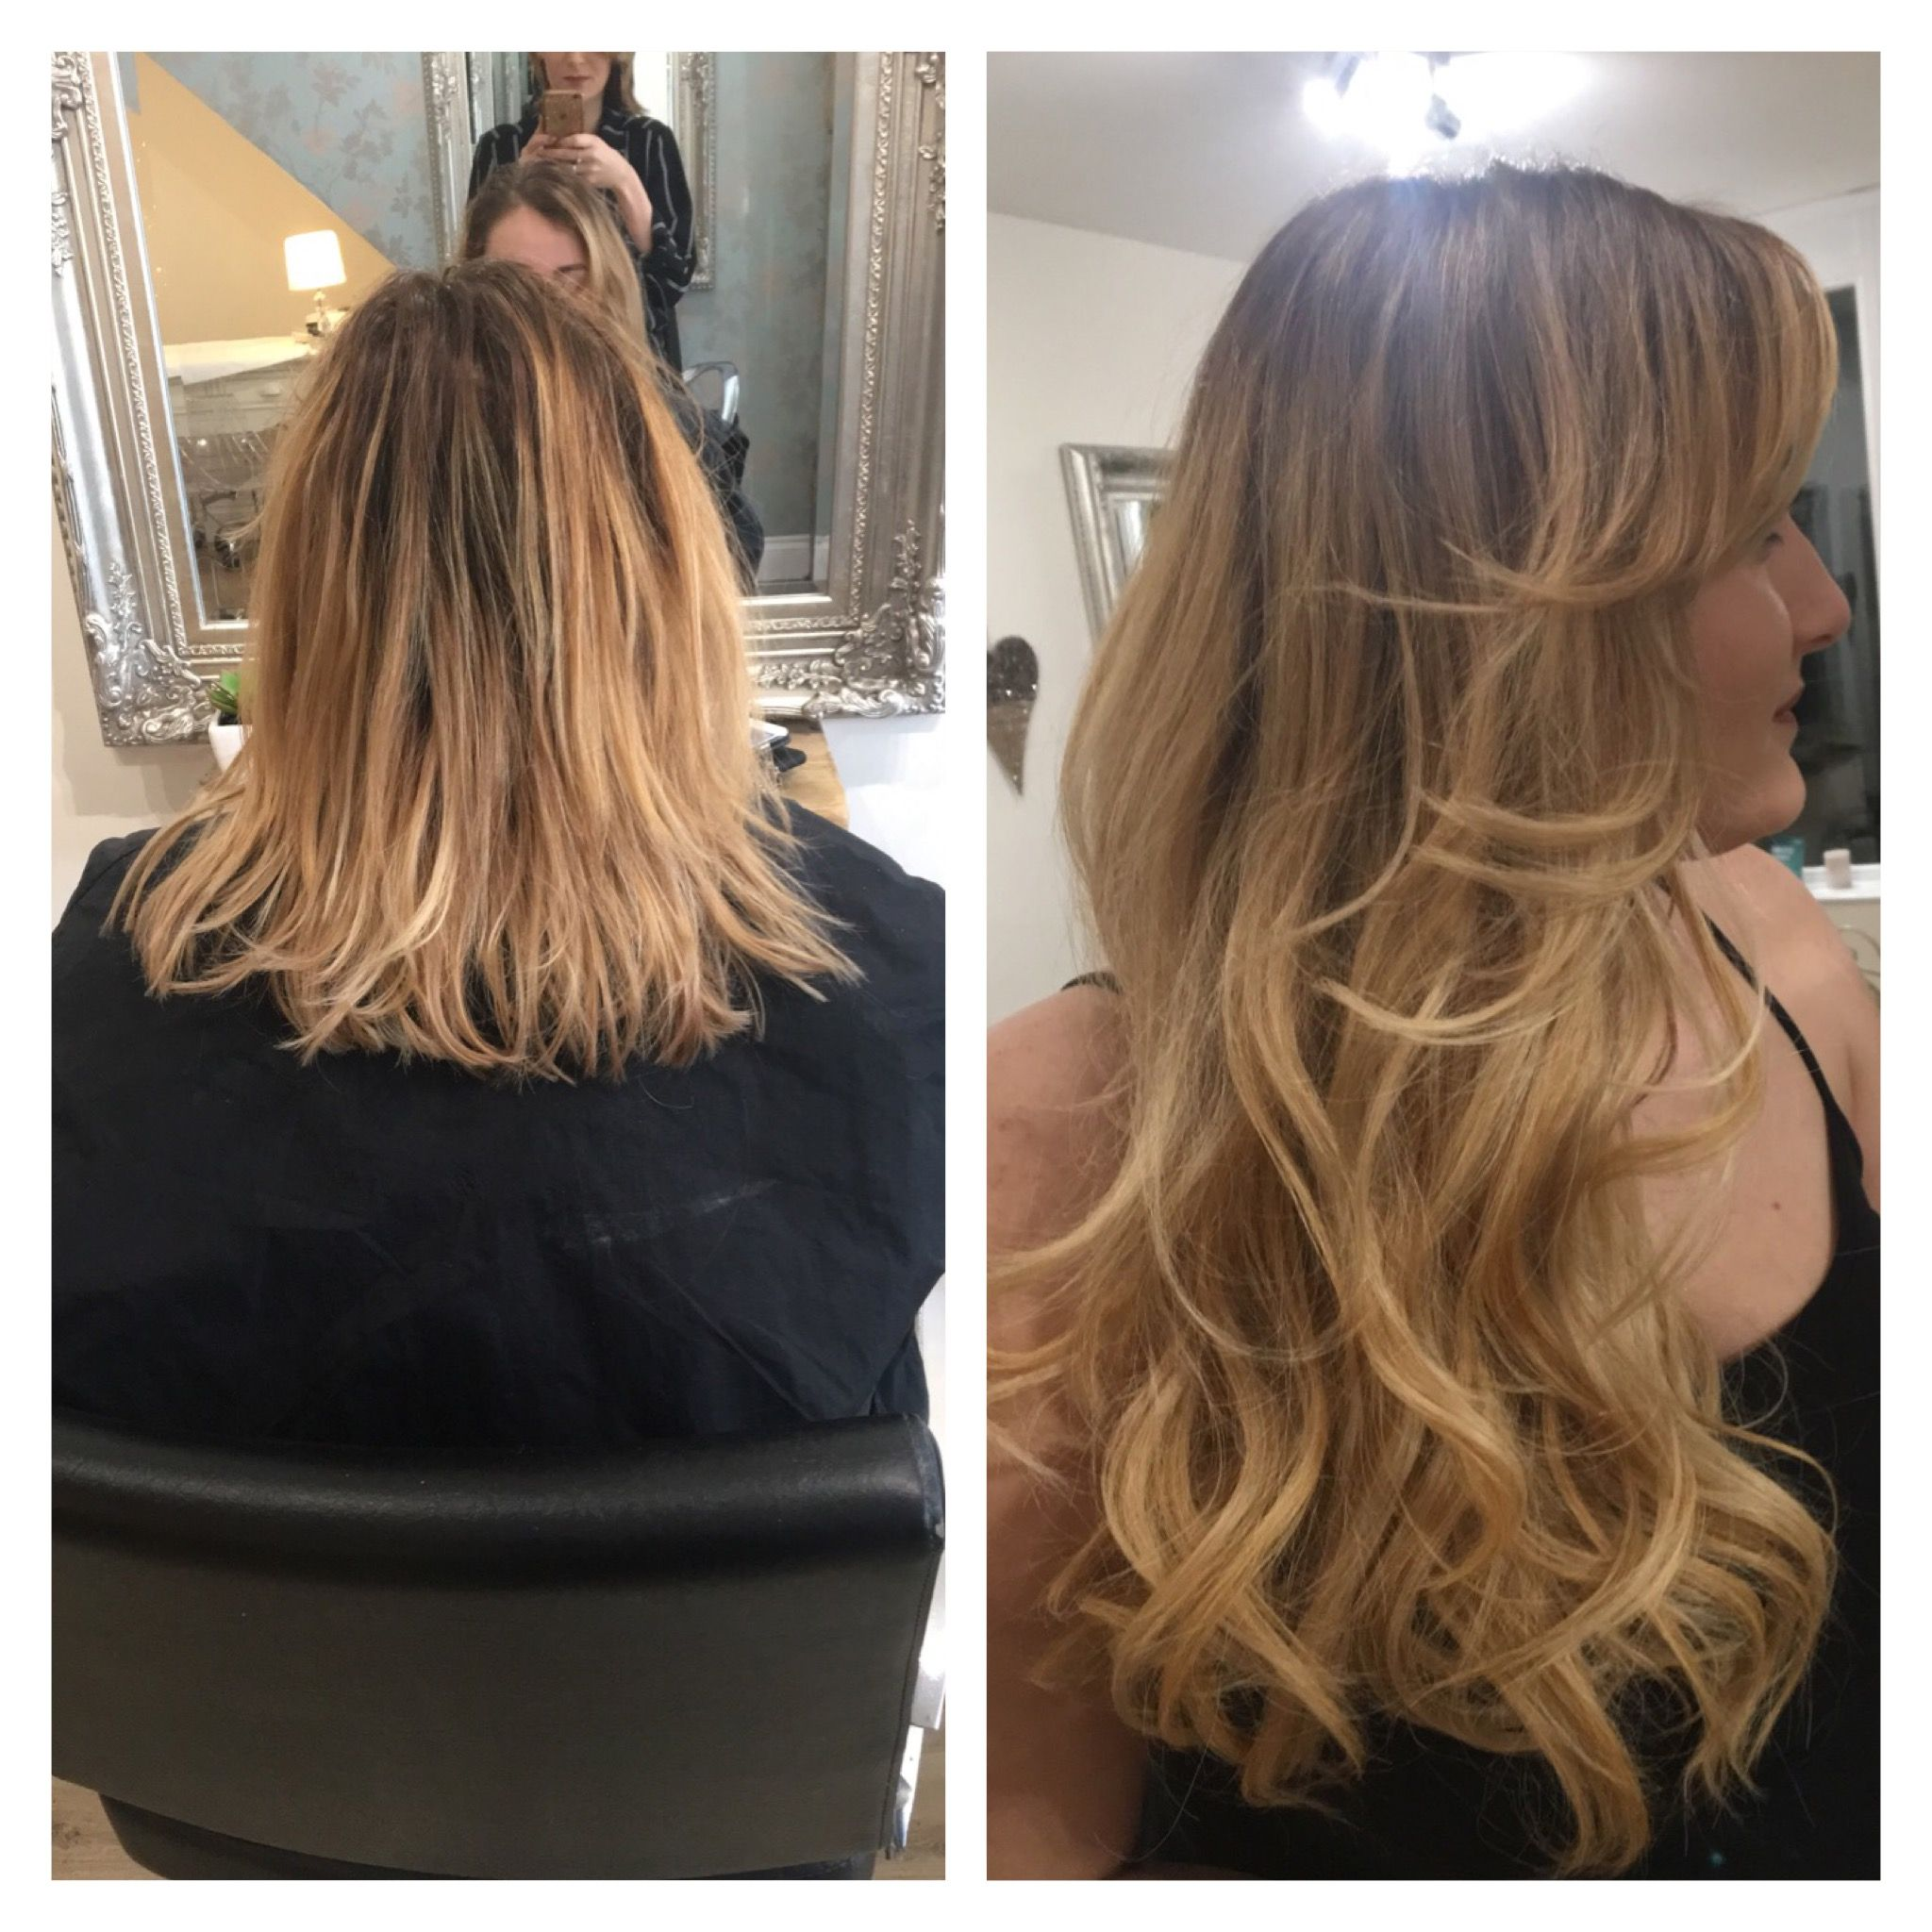 #greatlengths #hairextensions #hairlove #rootstretch #balayage #blonde #hairlove